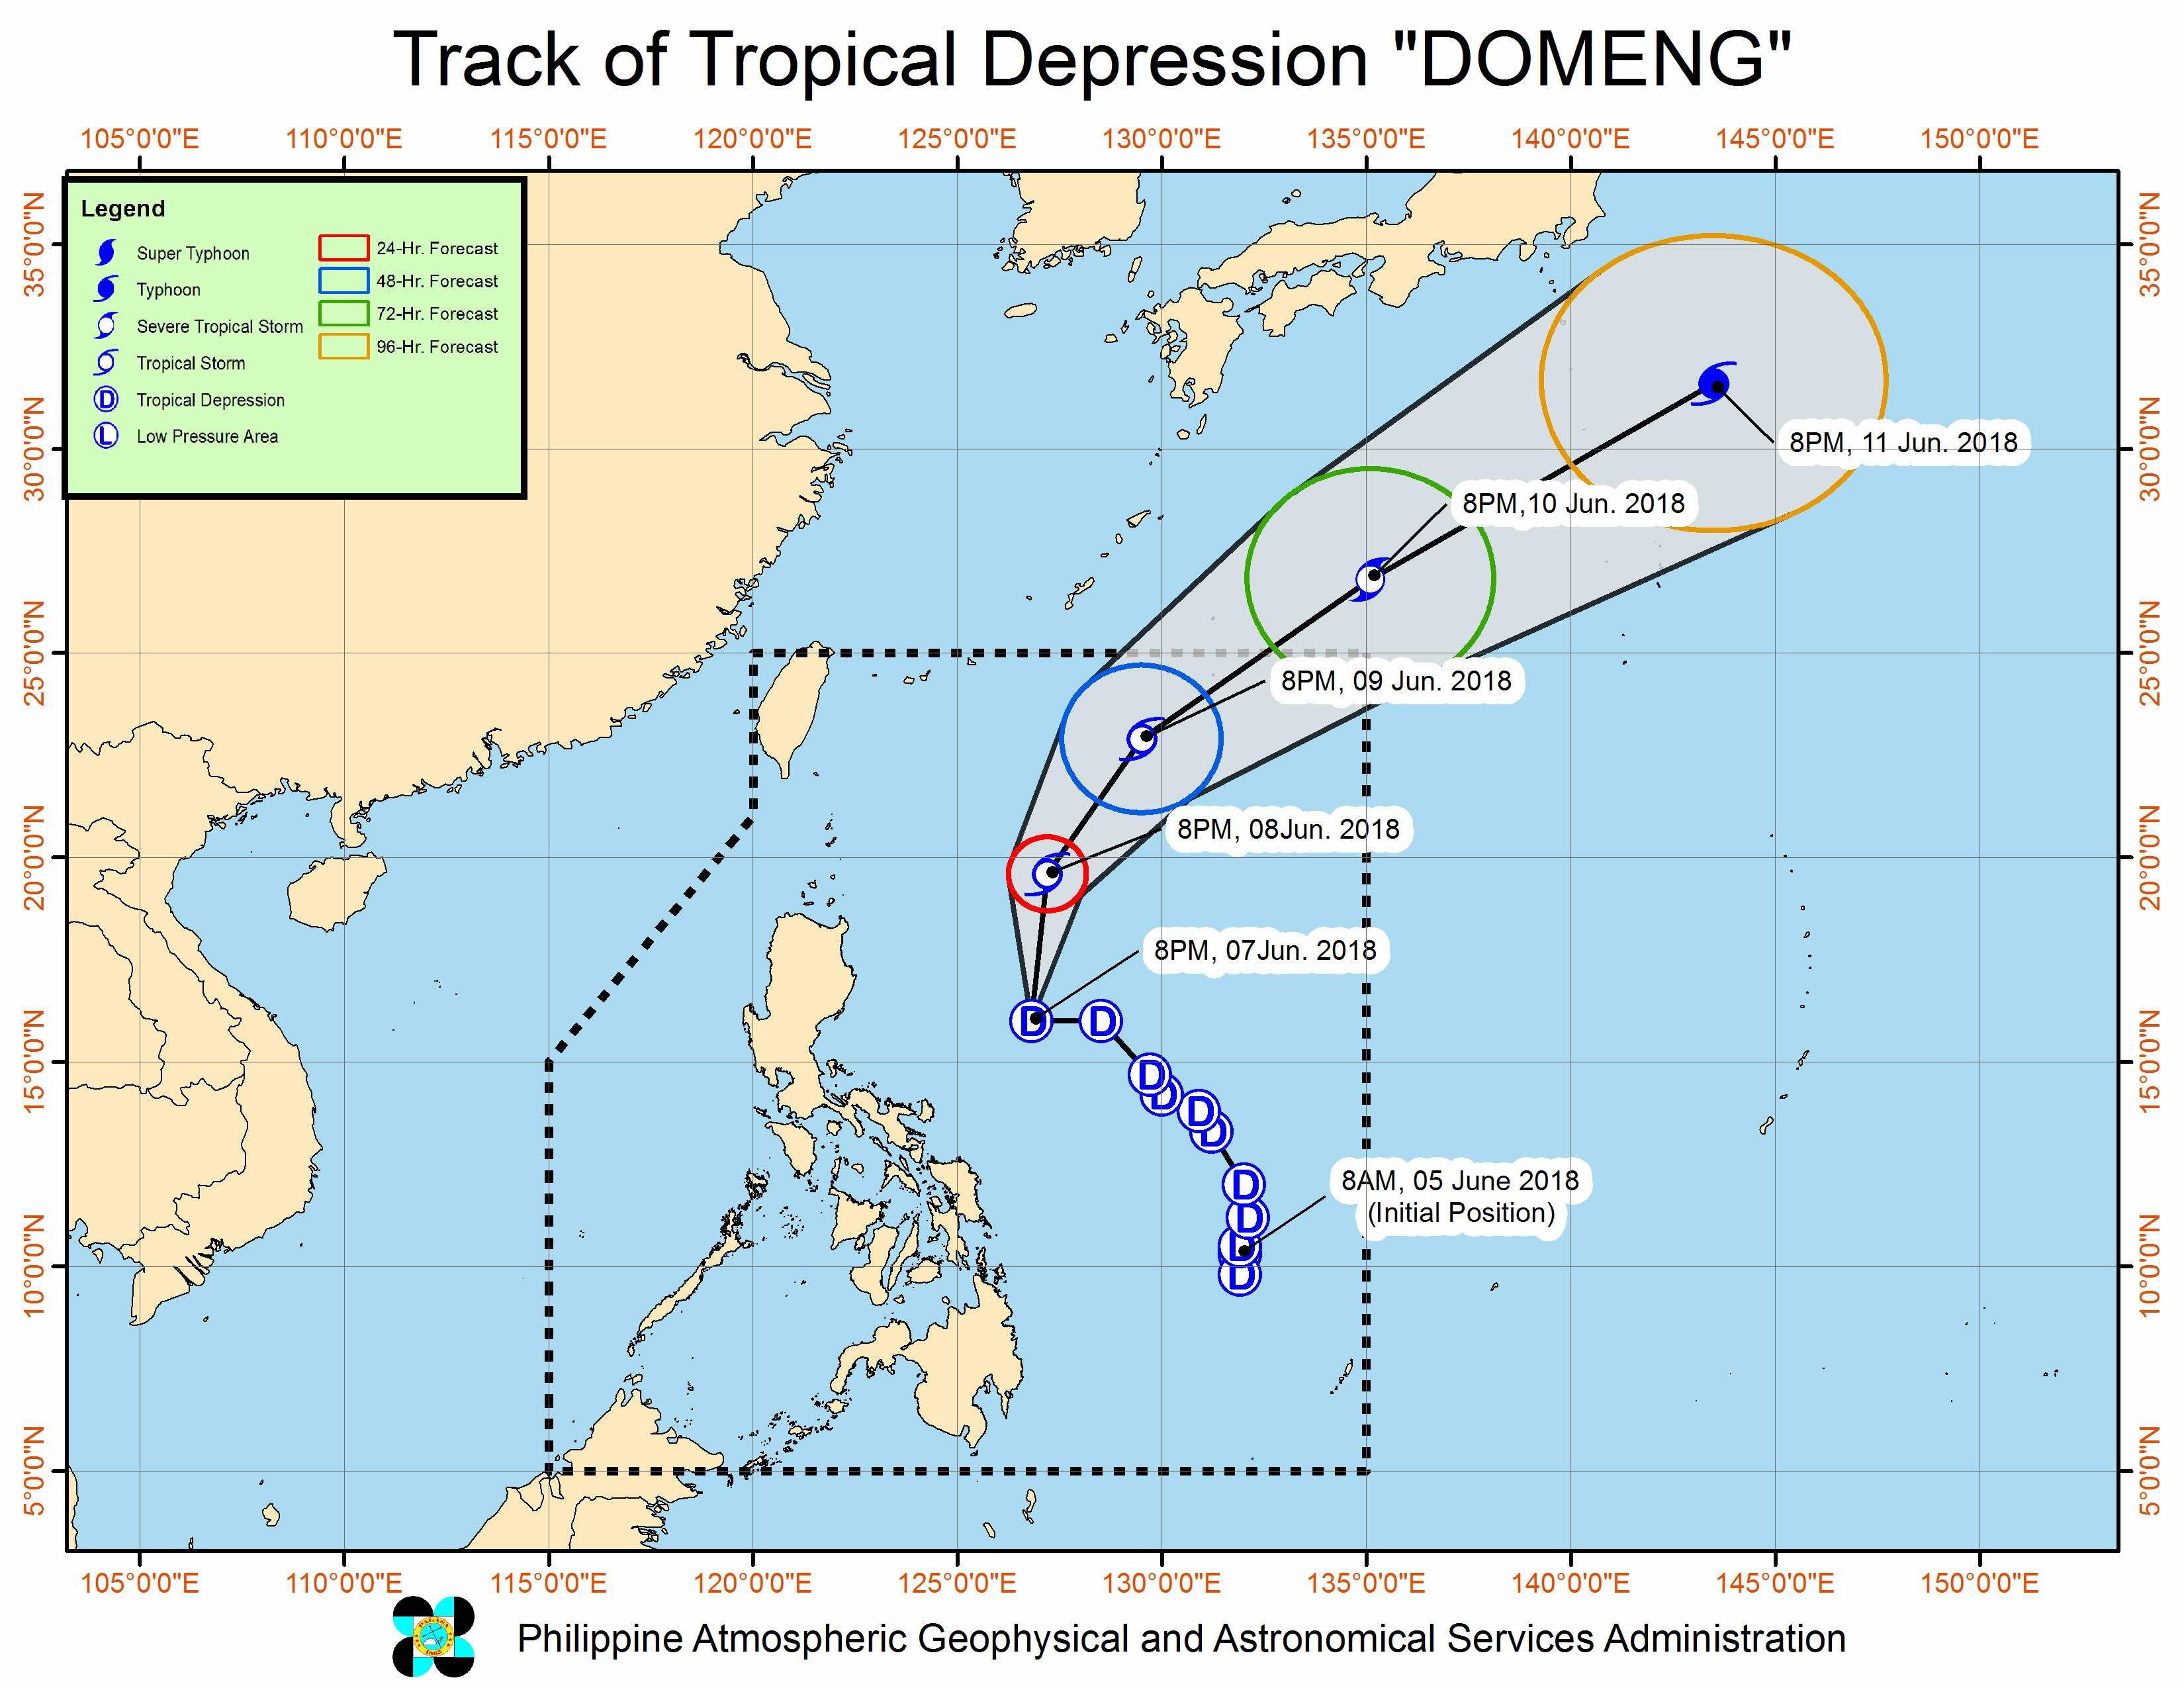 Forecast track of Tropical Depression Domeng as of June 7, 2018, 11 pm. Image courtesy of PAGASA